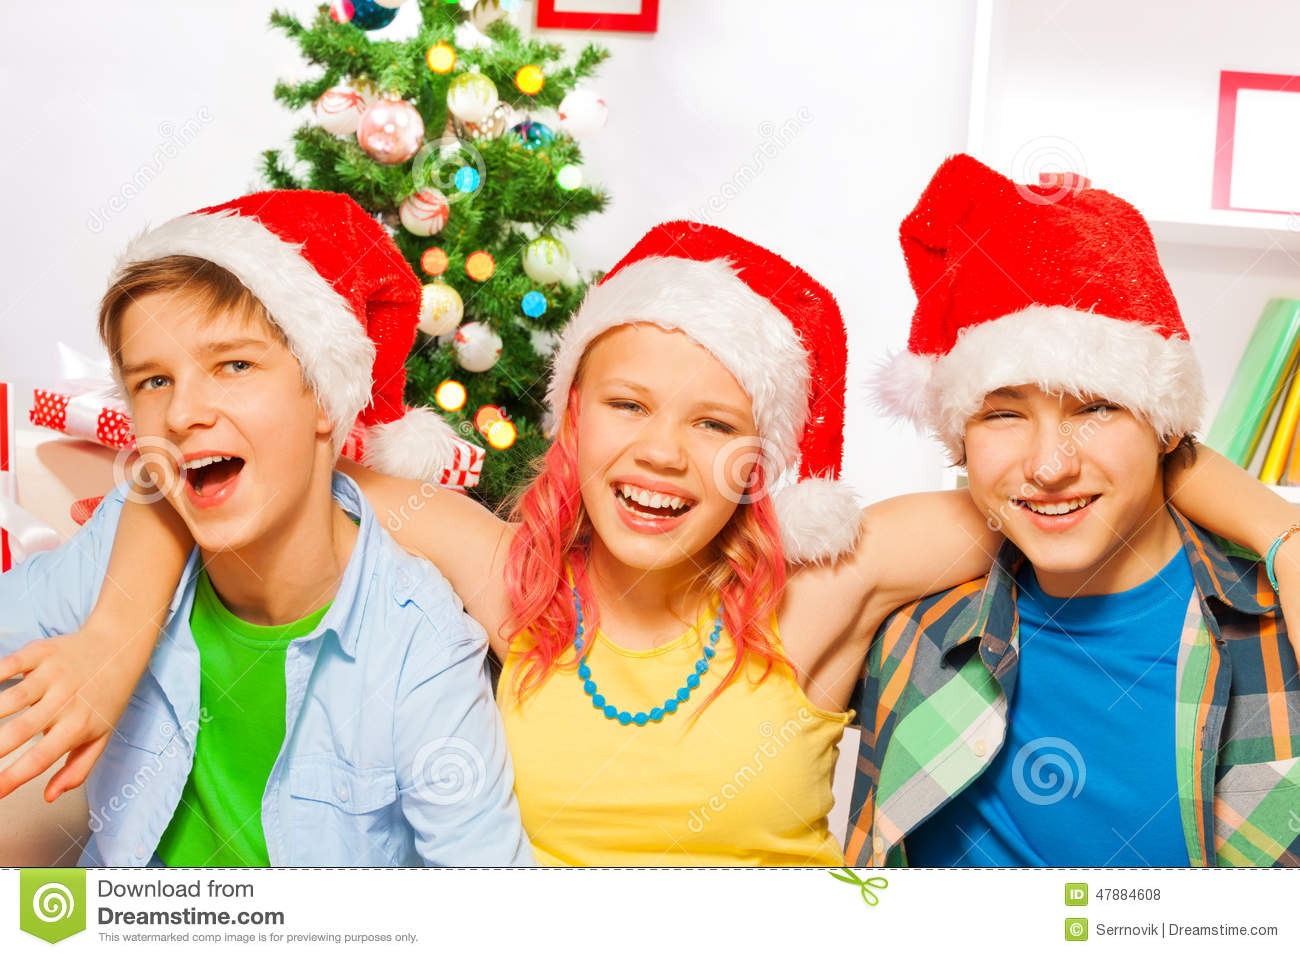 Christmas Party With Happy Teens Stock Photo - Image: 47884608